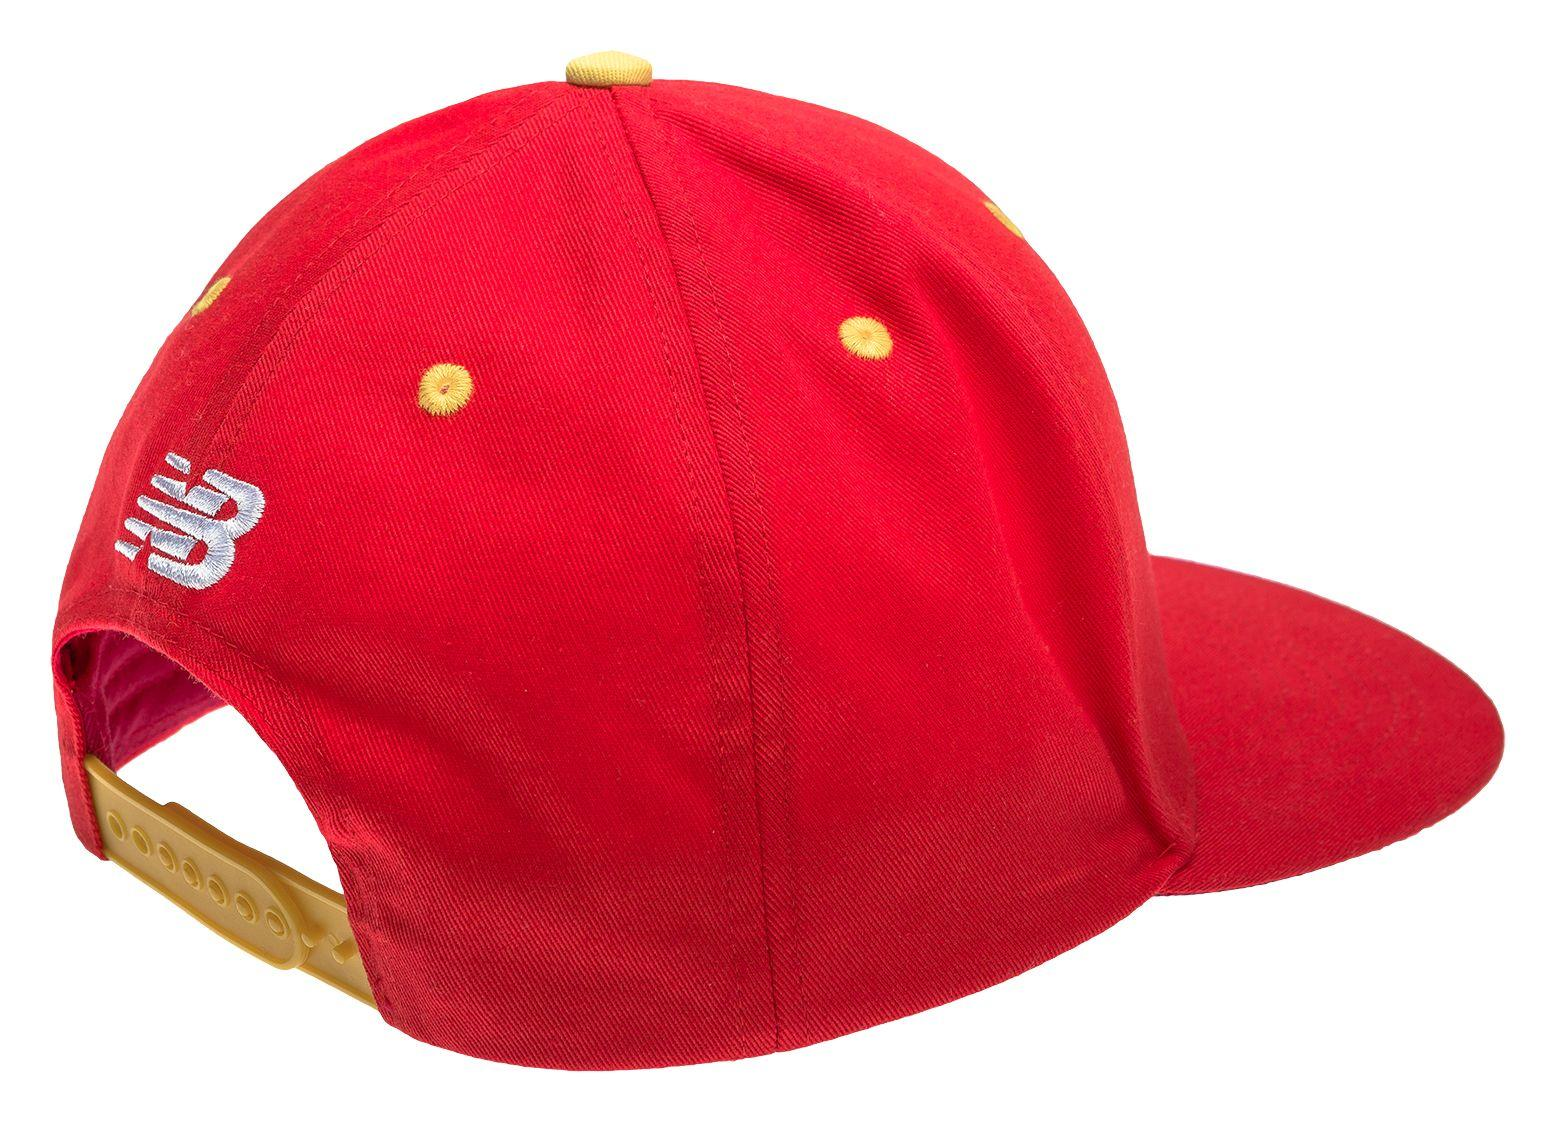 a3c2d25879d Lyst - New Balance Lfc Kop Cap in Red for Men